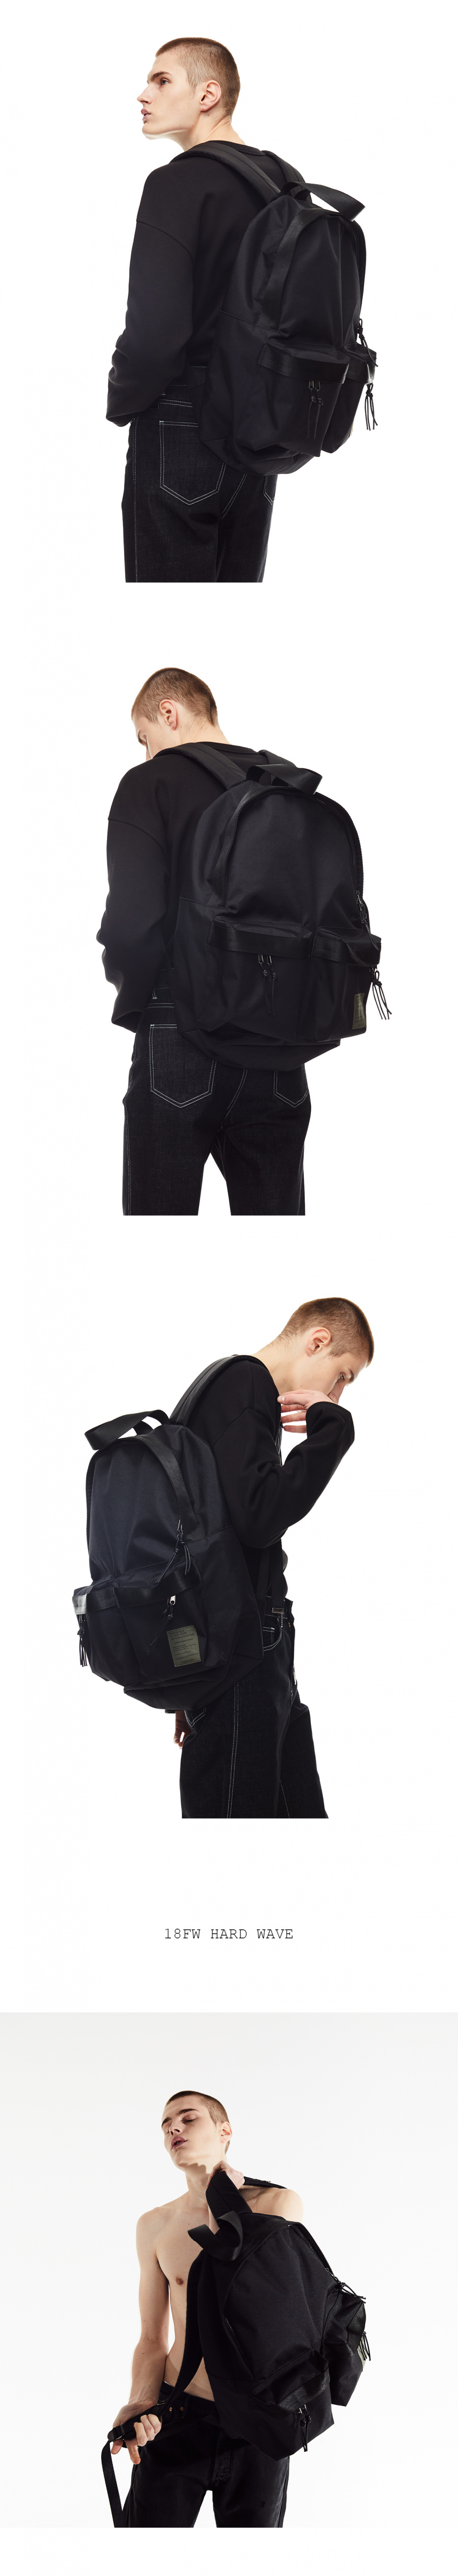 메종미네드(MAISON MINED) TWO POCKET BACKPACK